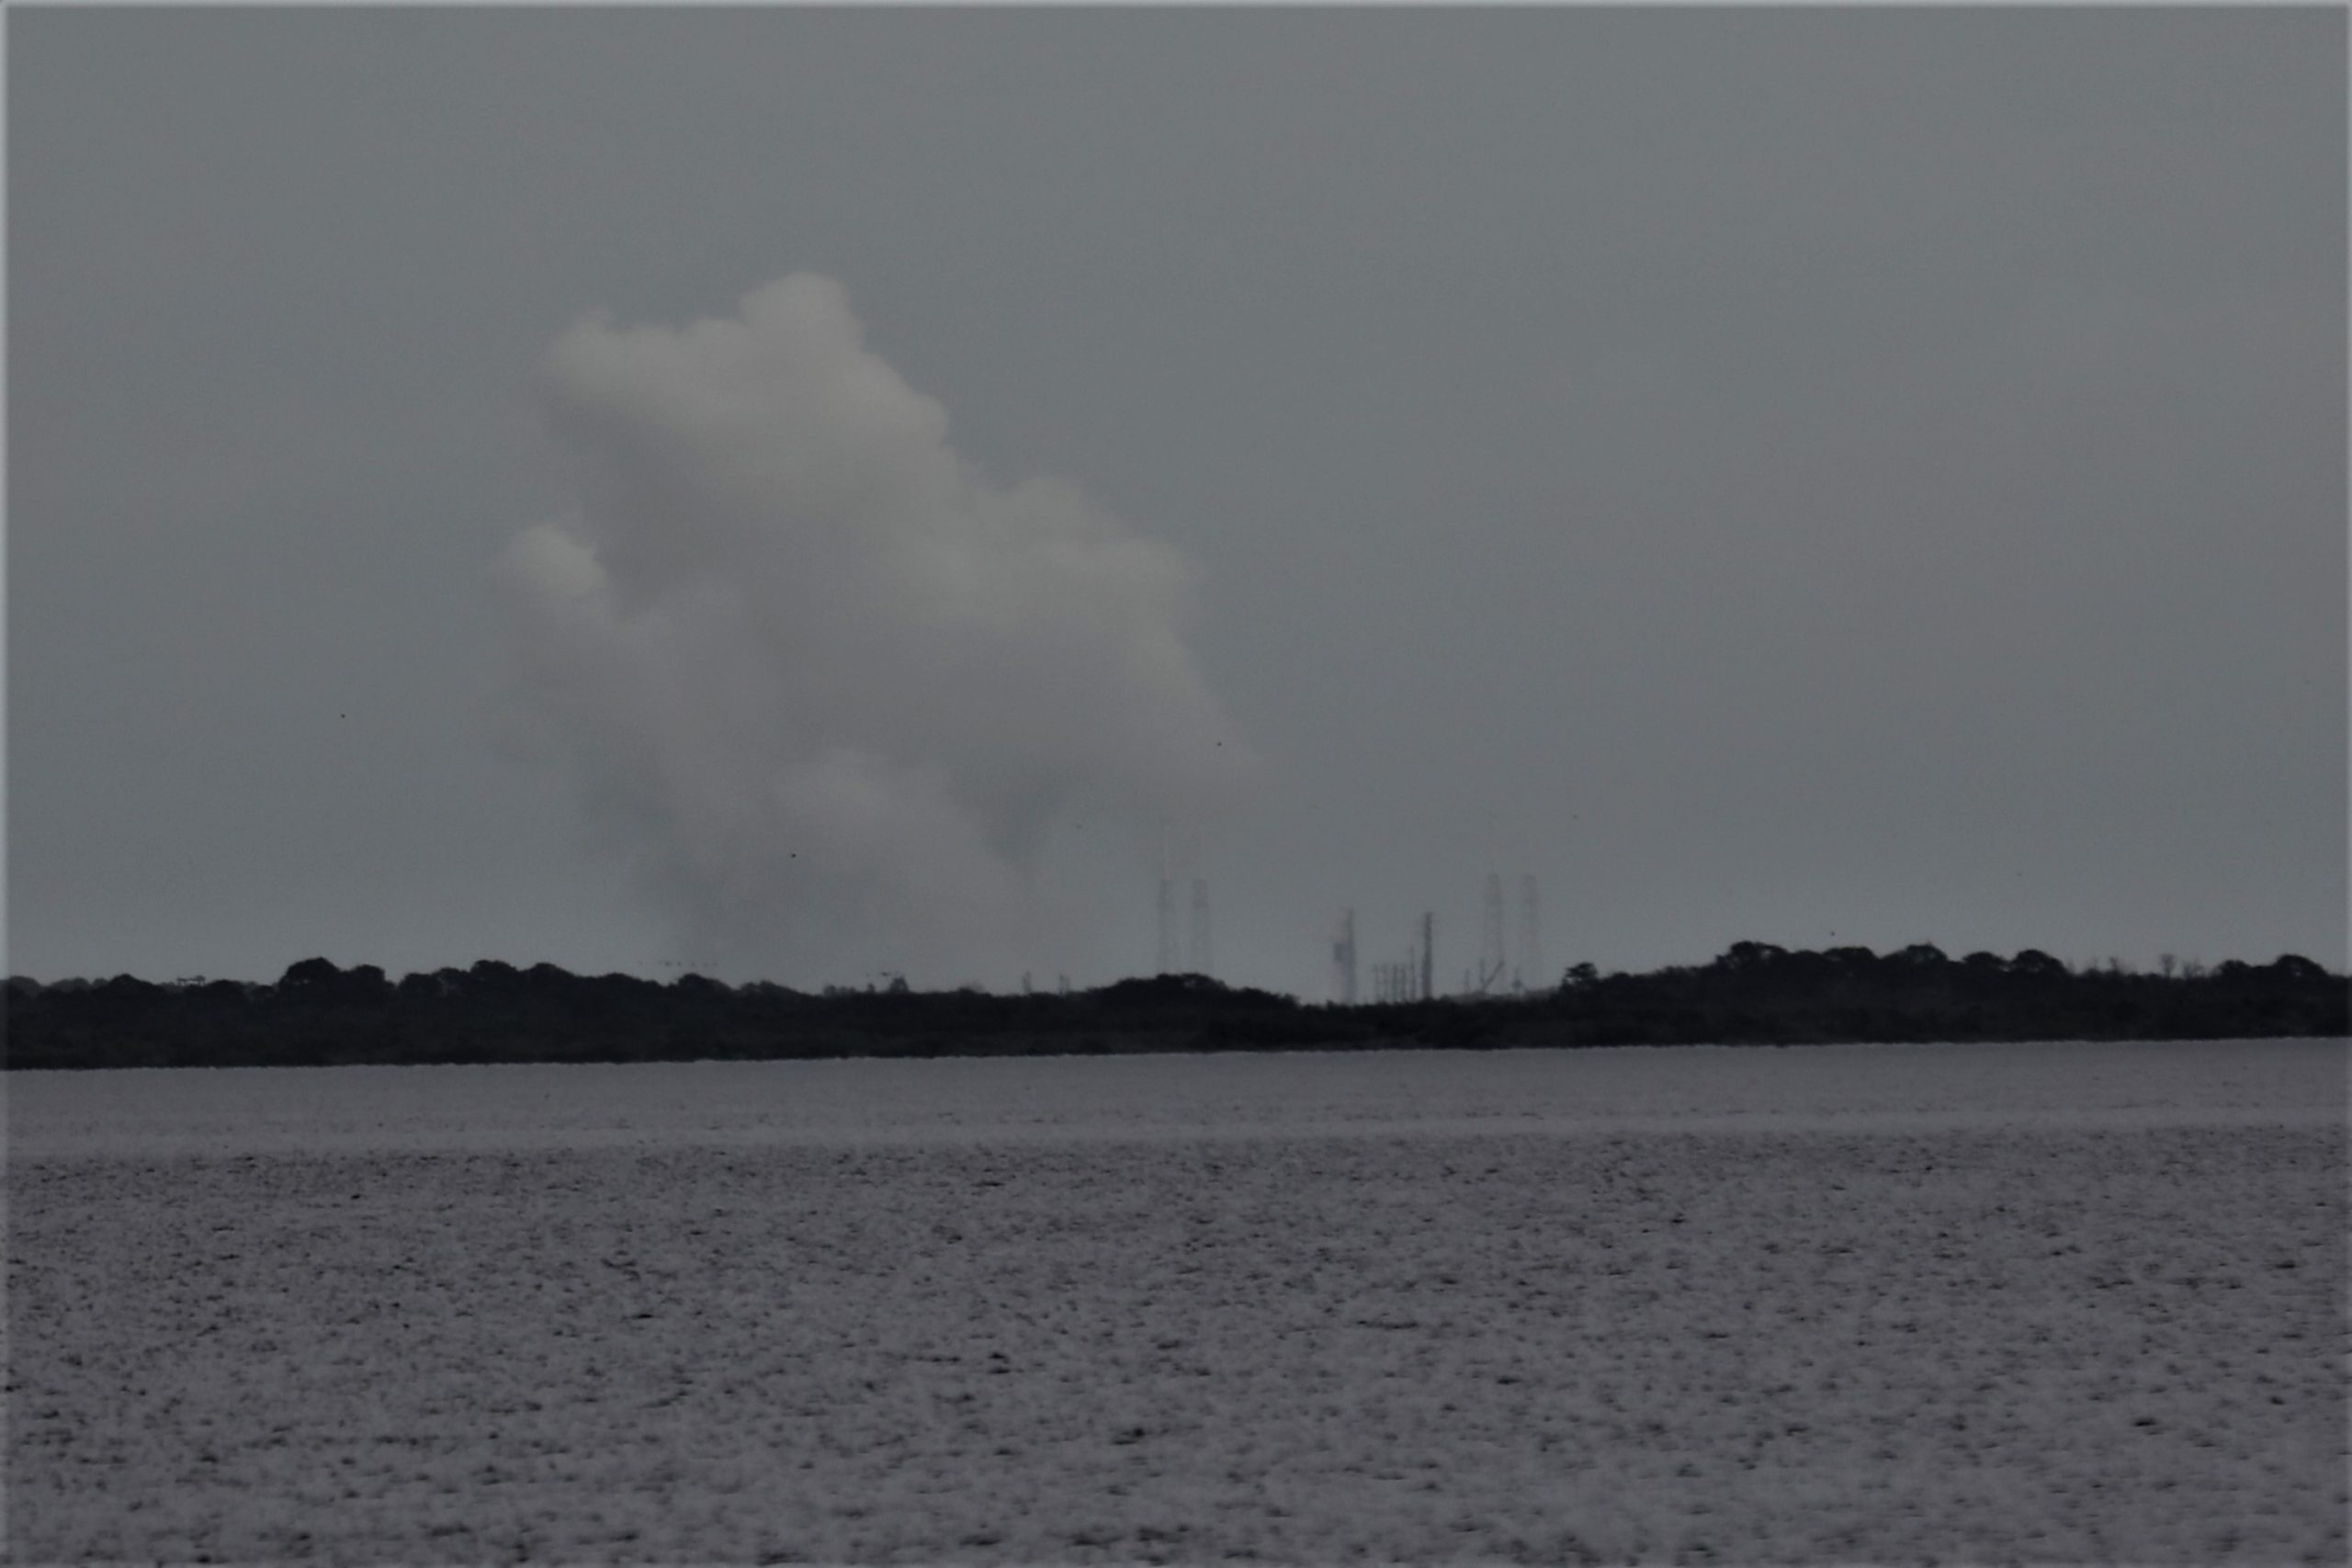 Friday the 13th Falcon 9 Static Fire Test Under Gloomy Skies Sets up SpaceX JCSAT-18 Comsat Launch Dec 16: Photos